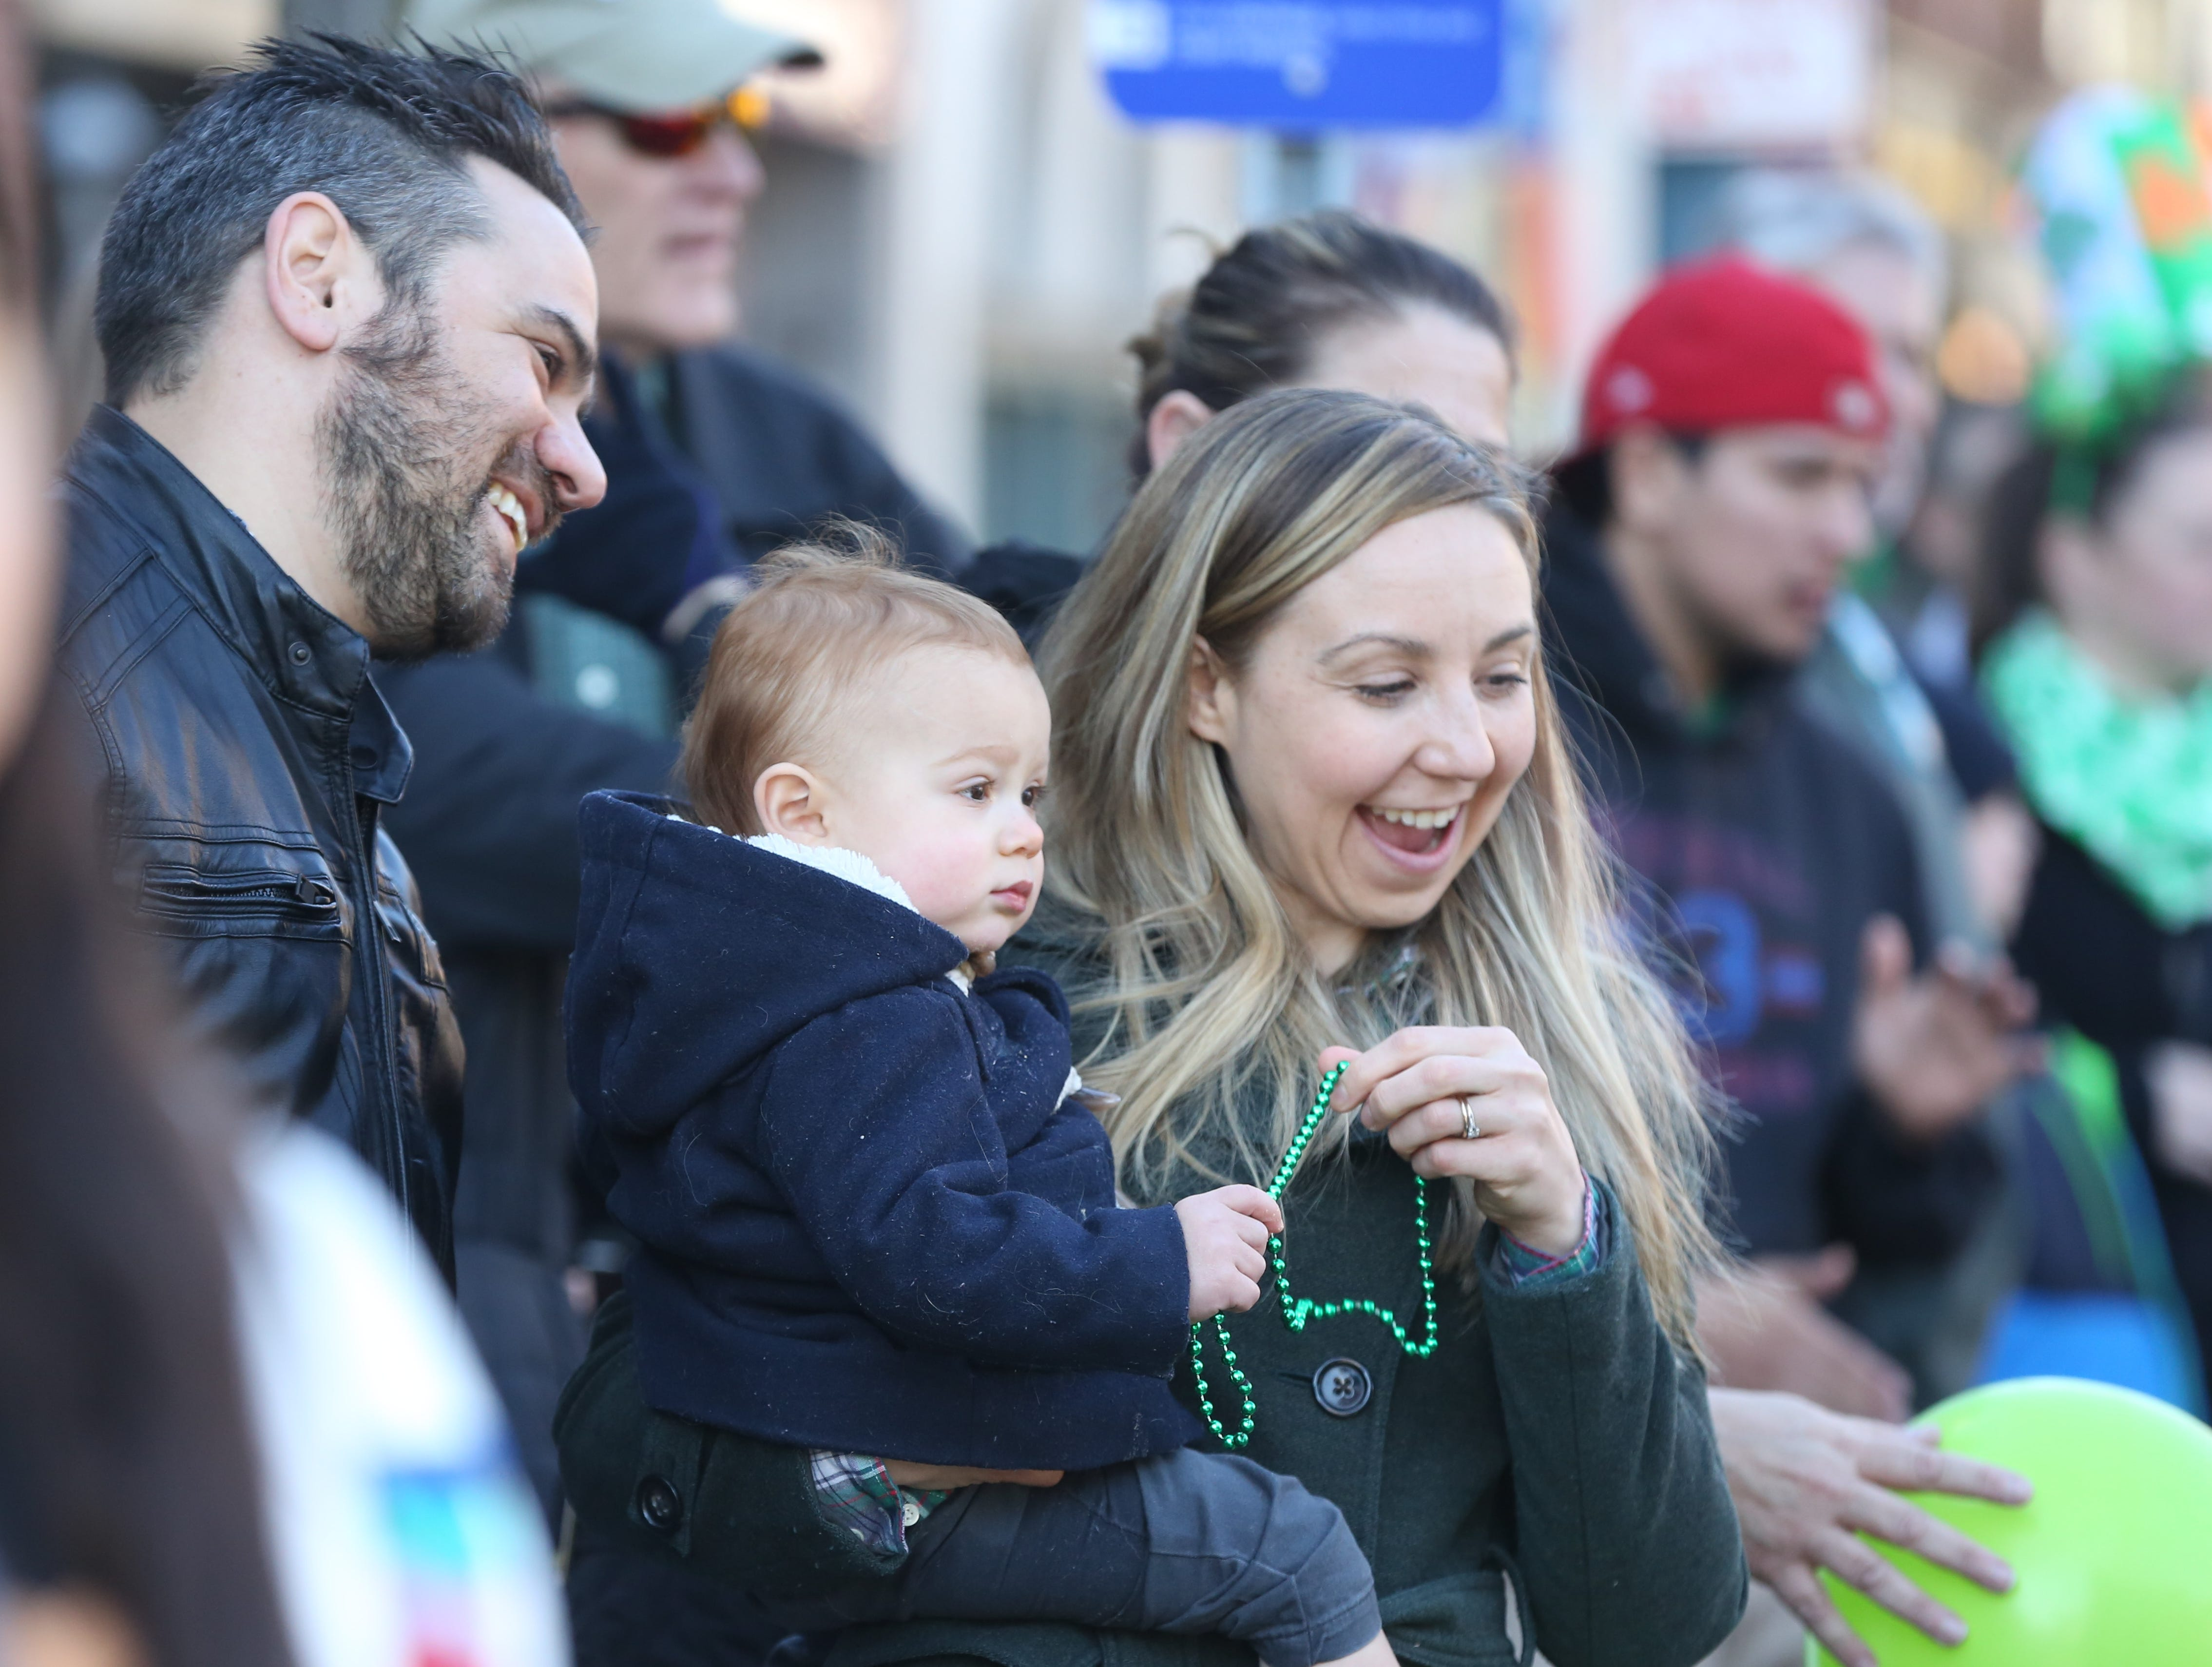 Arran Skinner, wife Melissa Skinner and 18-month-old son, Oscar enjoy the 30th Annual Peekskill St. PatrickÕs Day Parade in Peekskill March 9, 2019.